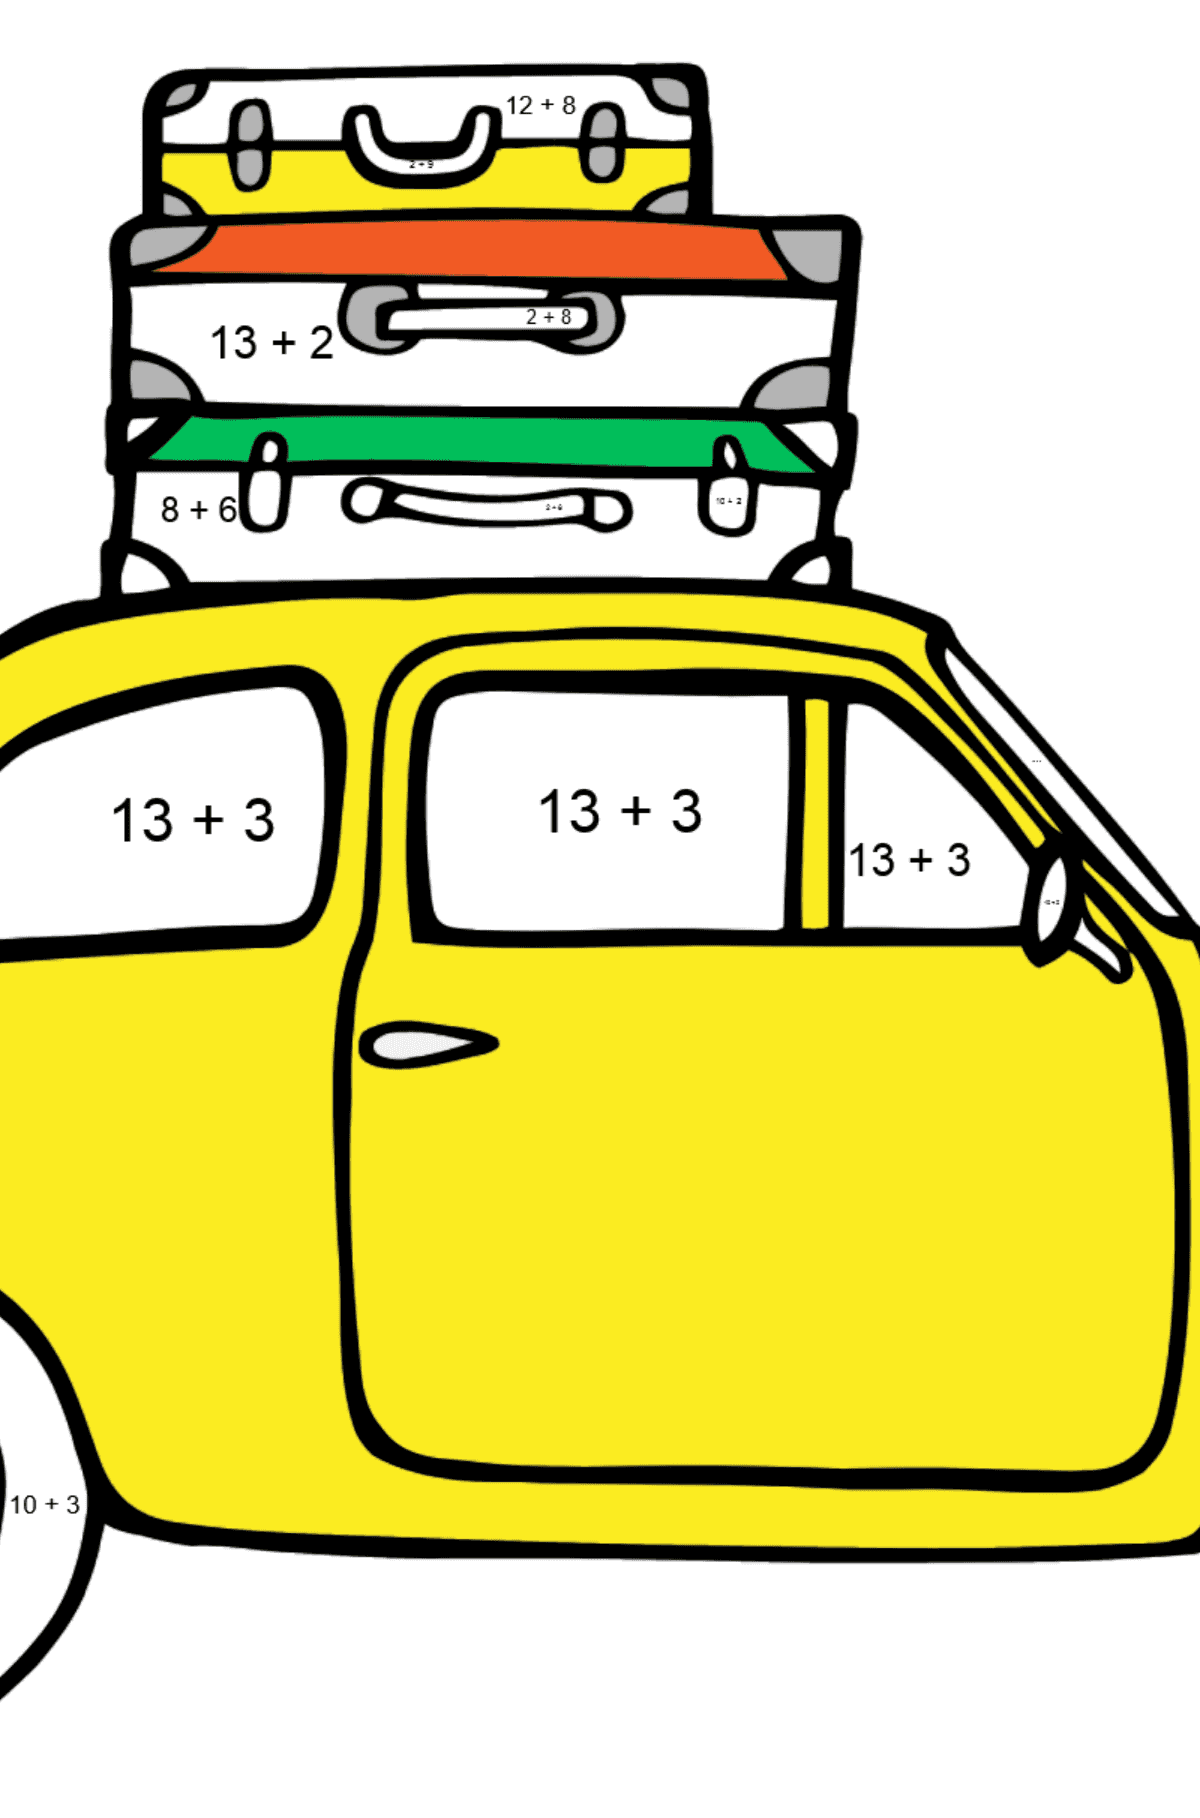 Fiat 600 car coloring page - Math Coloring - Addition for Kids